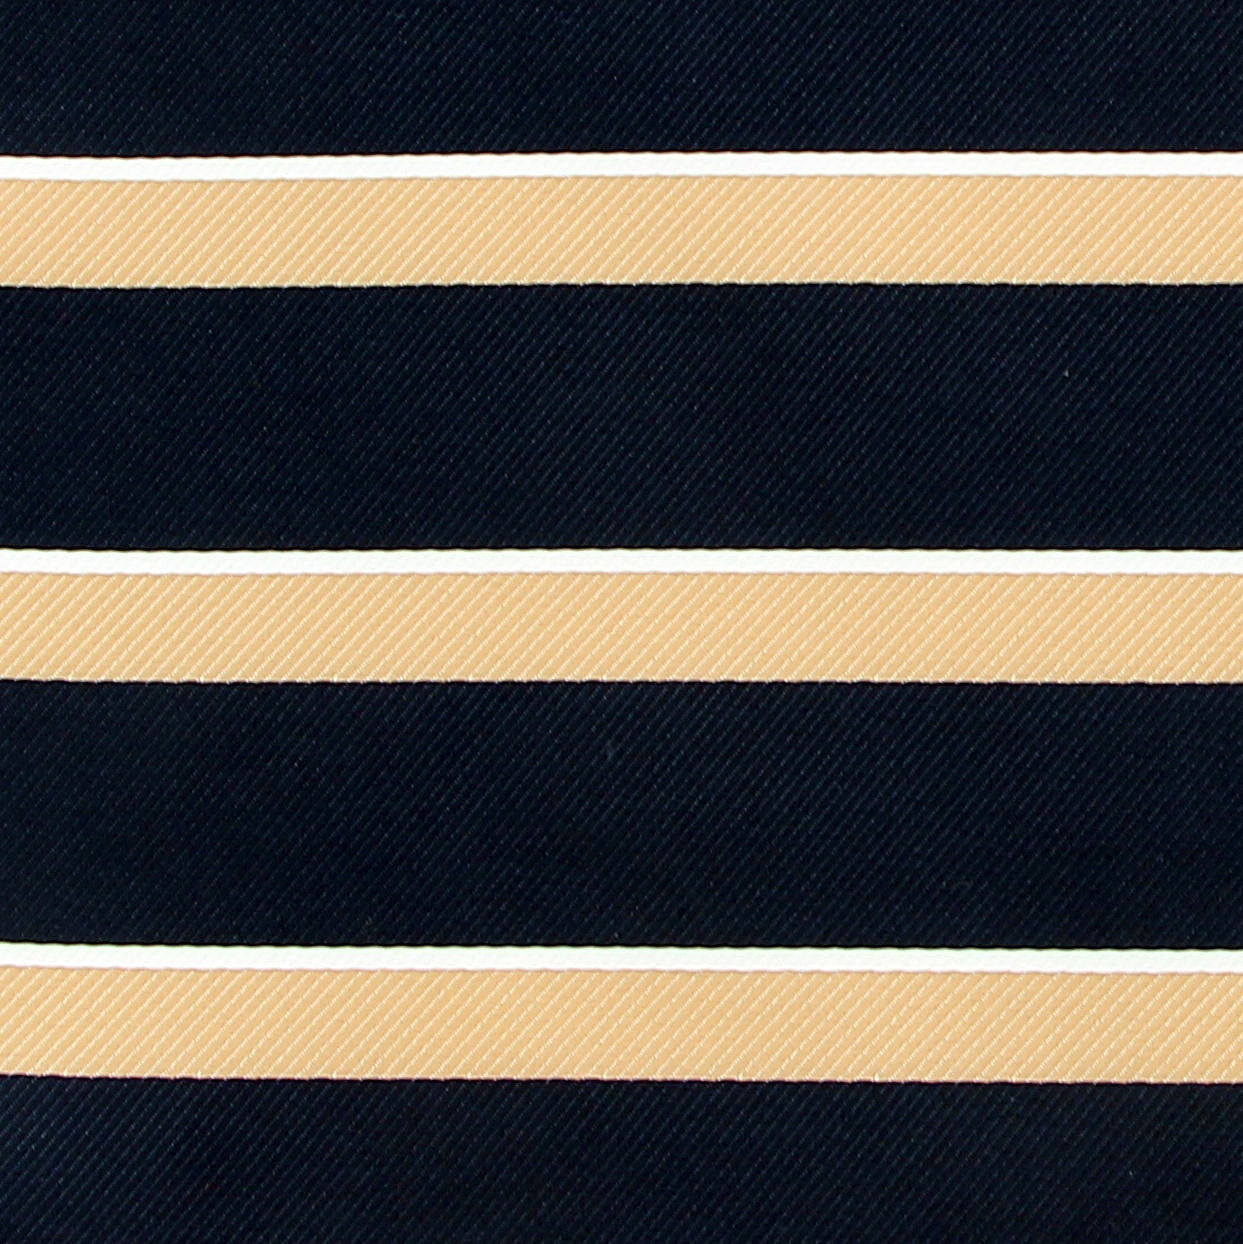 "Pocket Square Men's Hanky Navy Blue Gold Striped 10"" Dress Suit Handkerchief New"